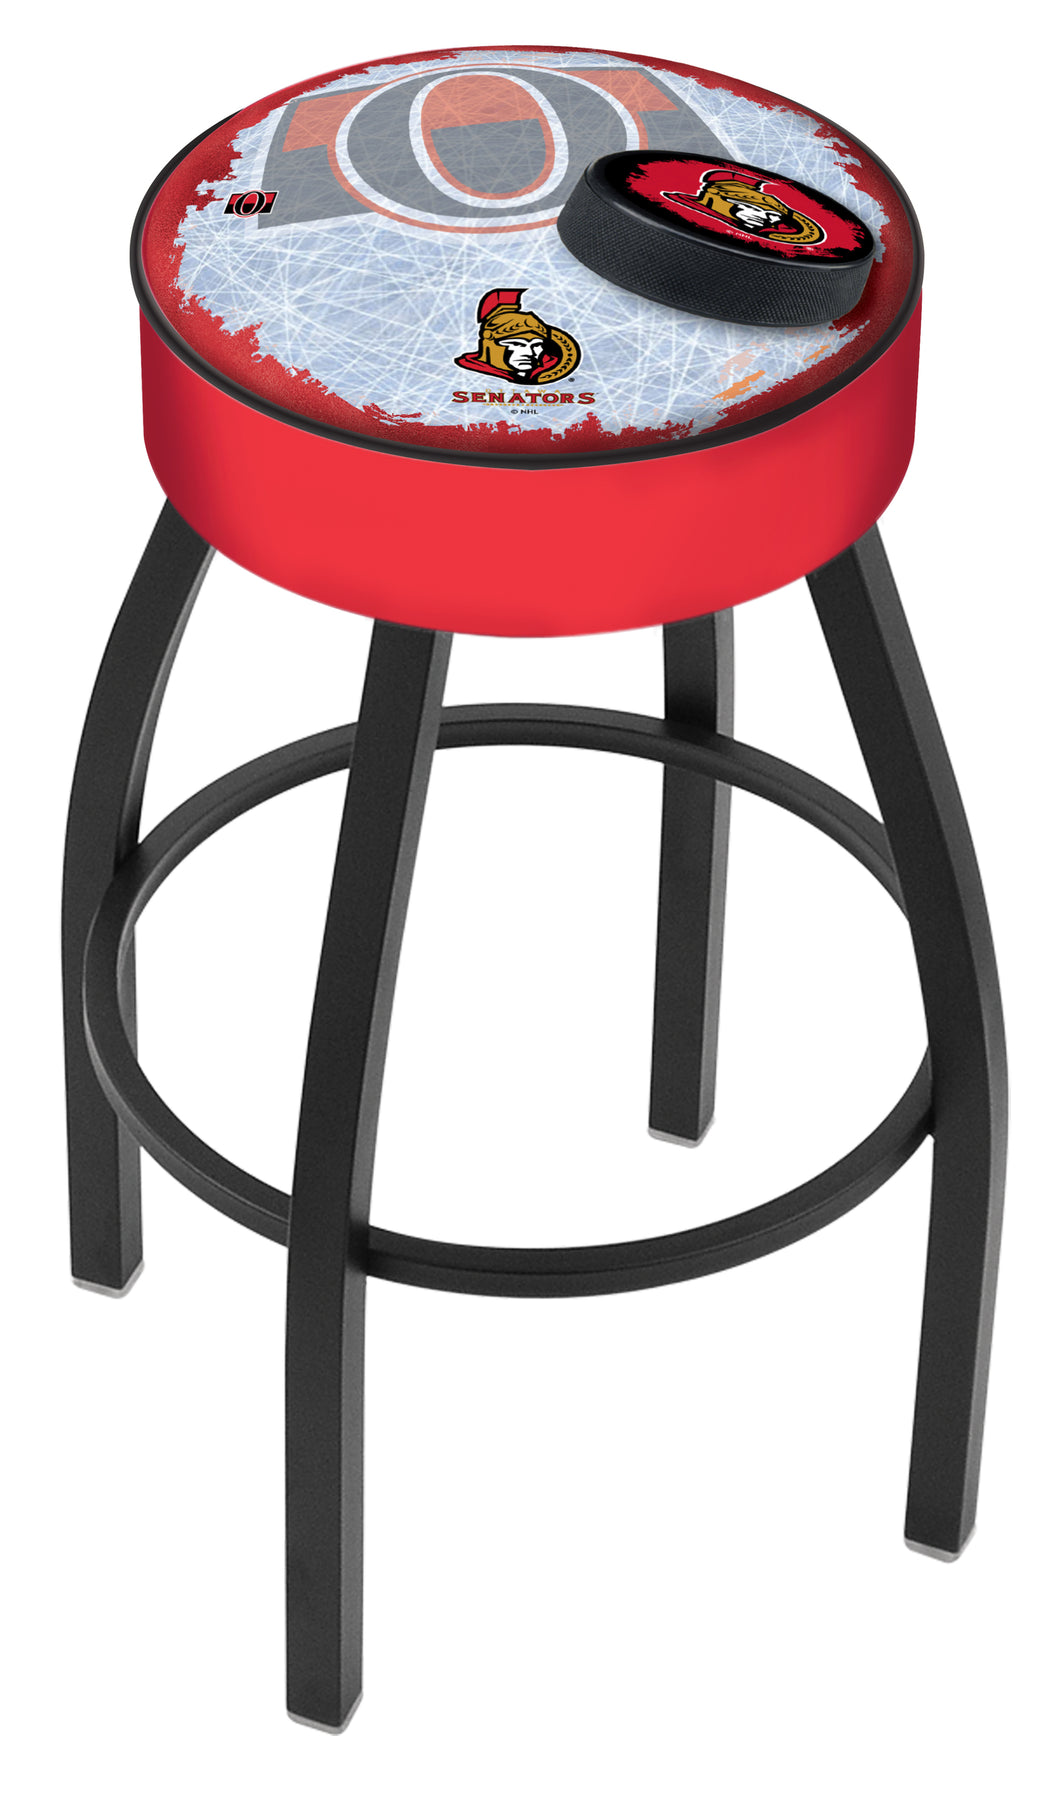 Holland Bar Stool,NHL,Bar Stool,L8B1,30